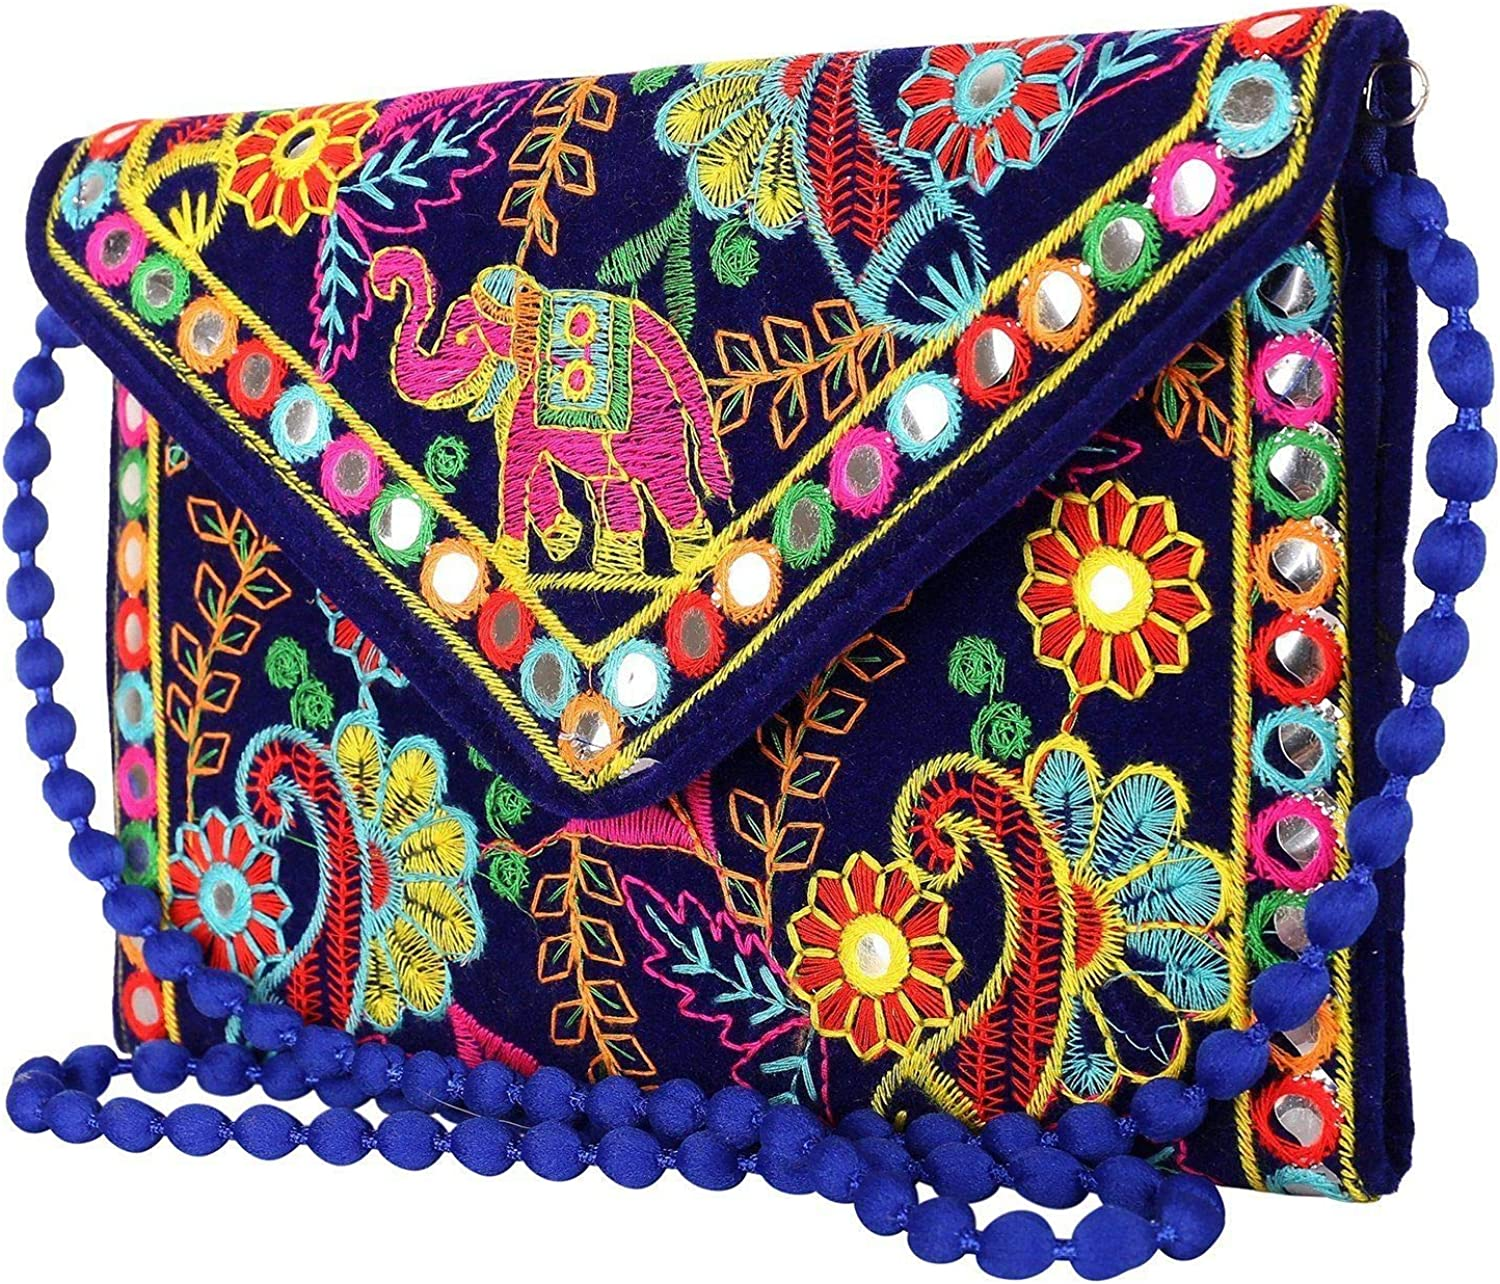 Indian Wholesale 50 pc lot Bulk Mandala Hand Bag Ethnic Clutches Purse Shoulder Assorted for Ladies by Panchal Creation-47